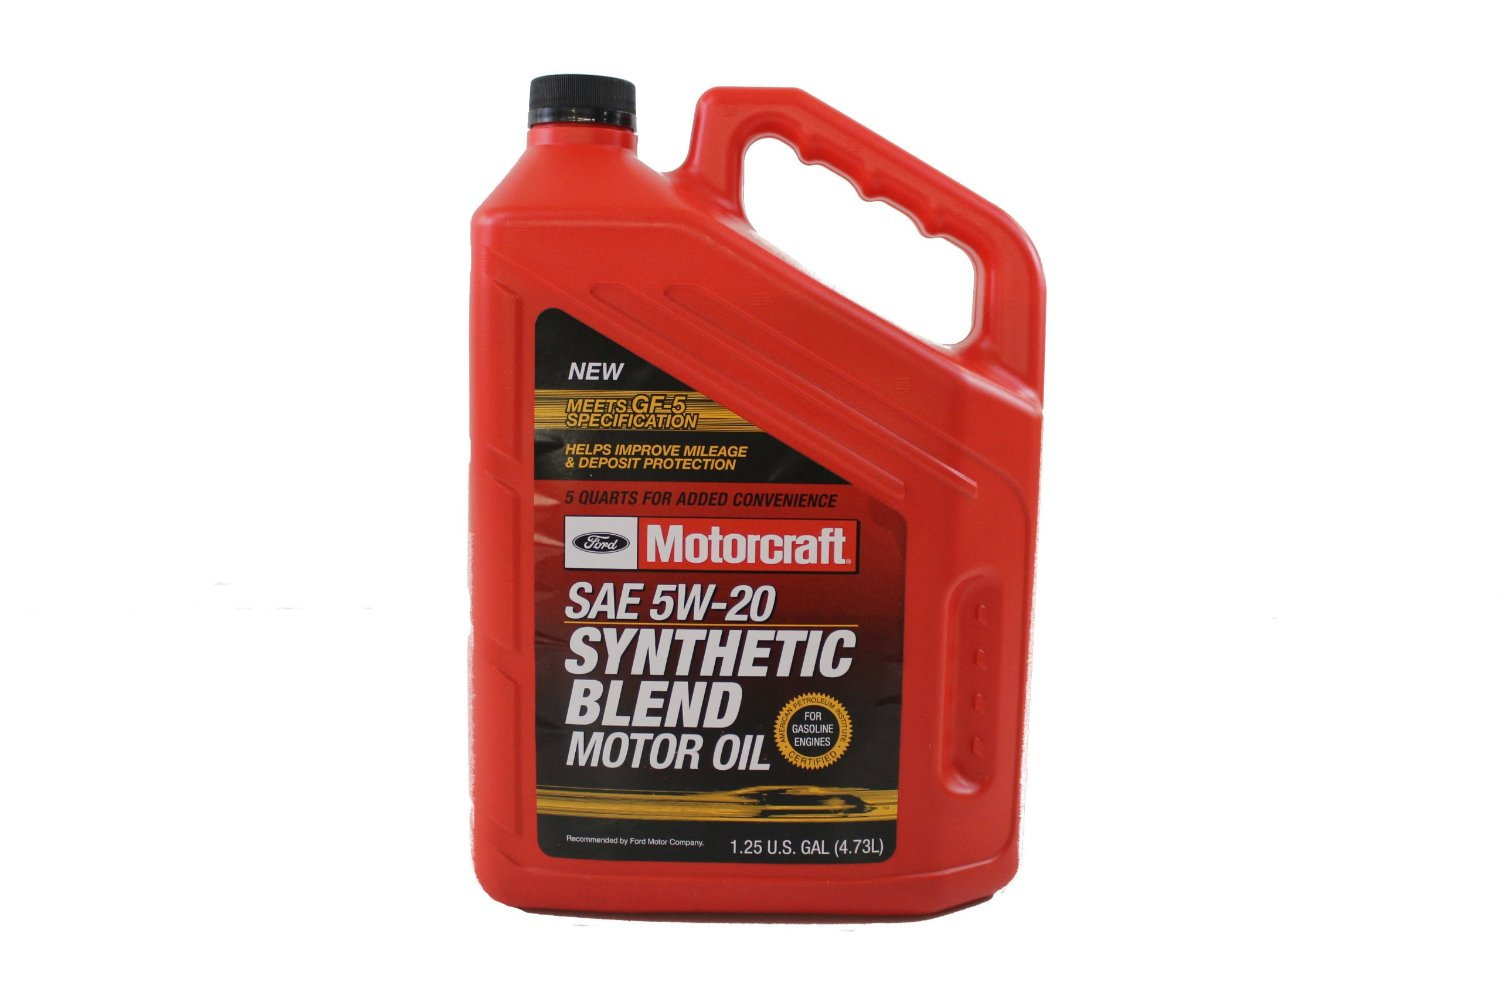 photograph about Castrol Oil Coupons Printable named Motorcraft engine oil discount coupons : Office environment max coupon codes